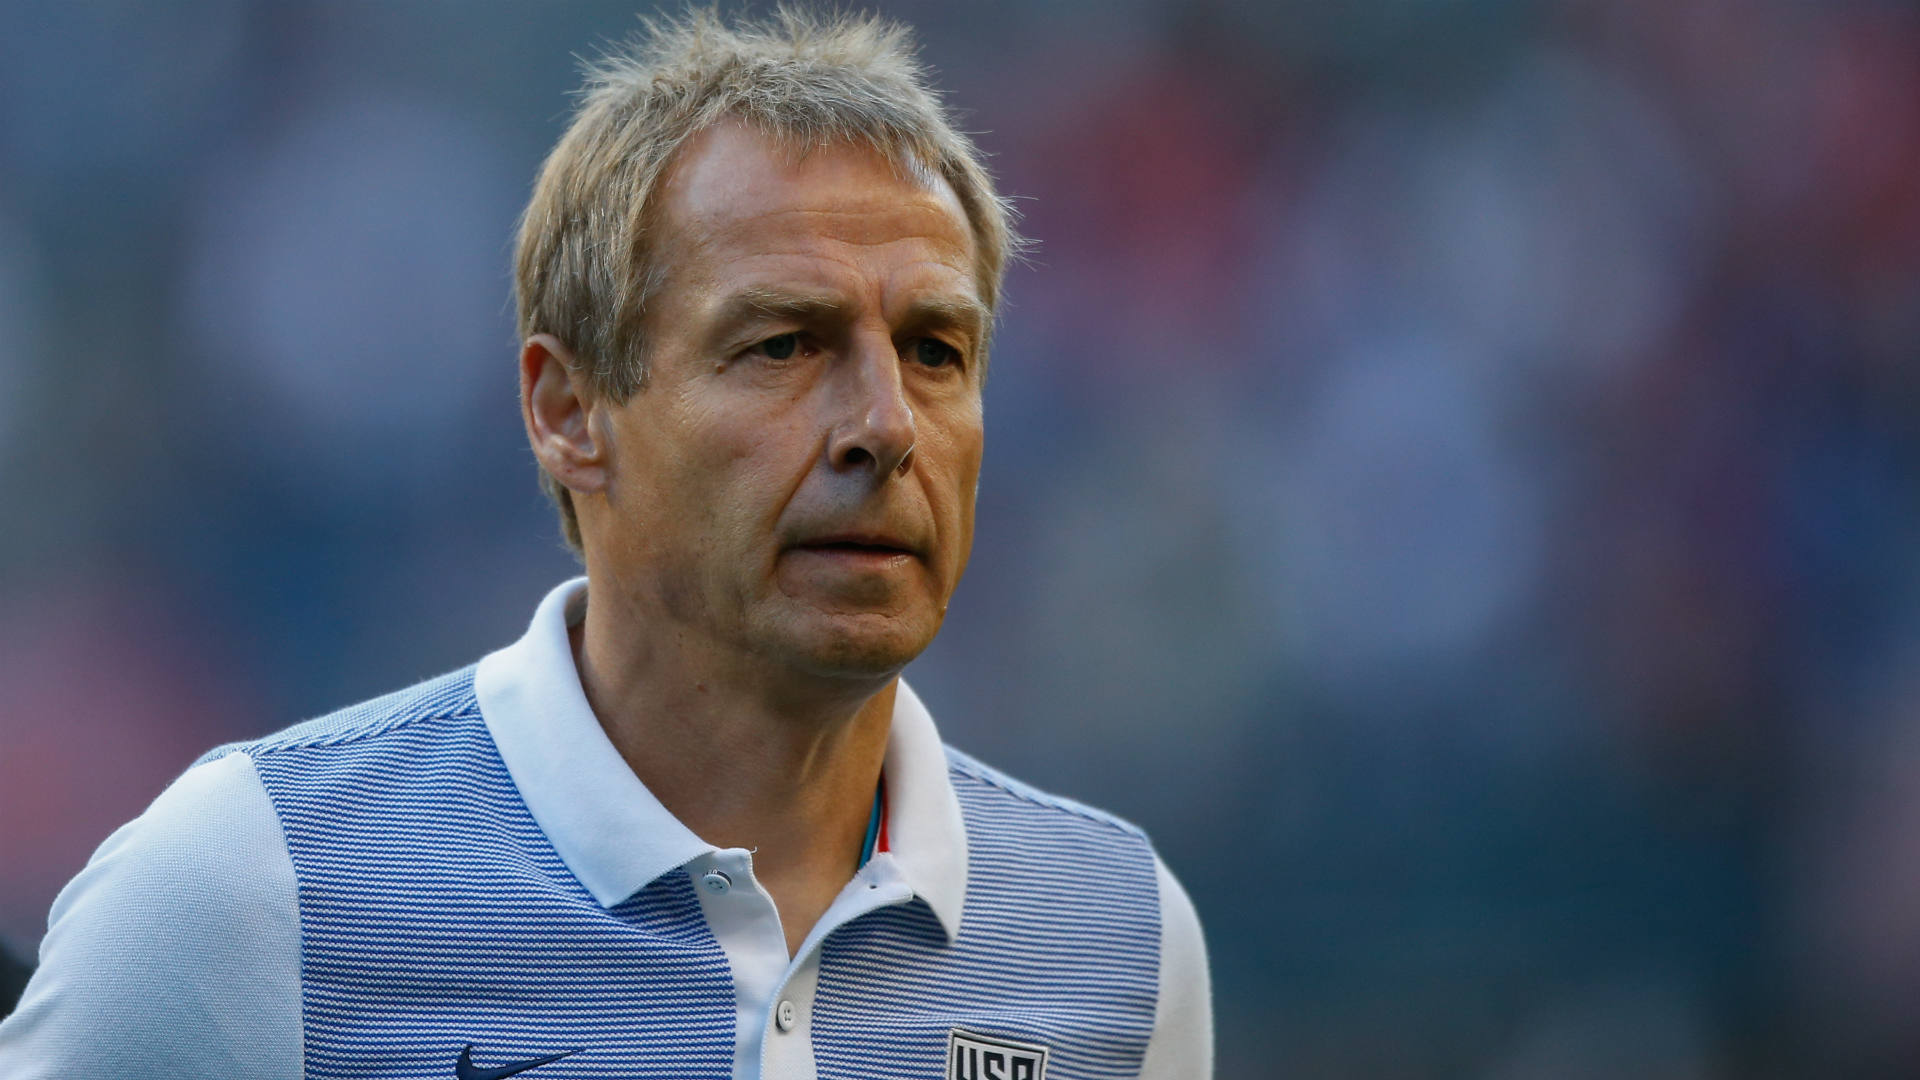 Jurgenklinsmann Getty Ftr  Jpg Jurgen Klinsmann Getty